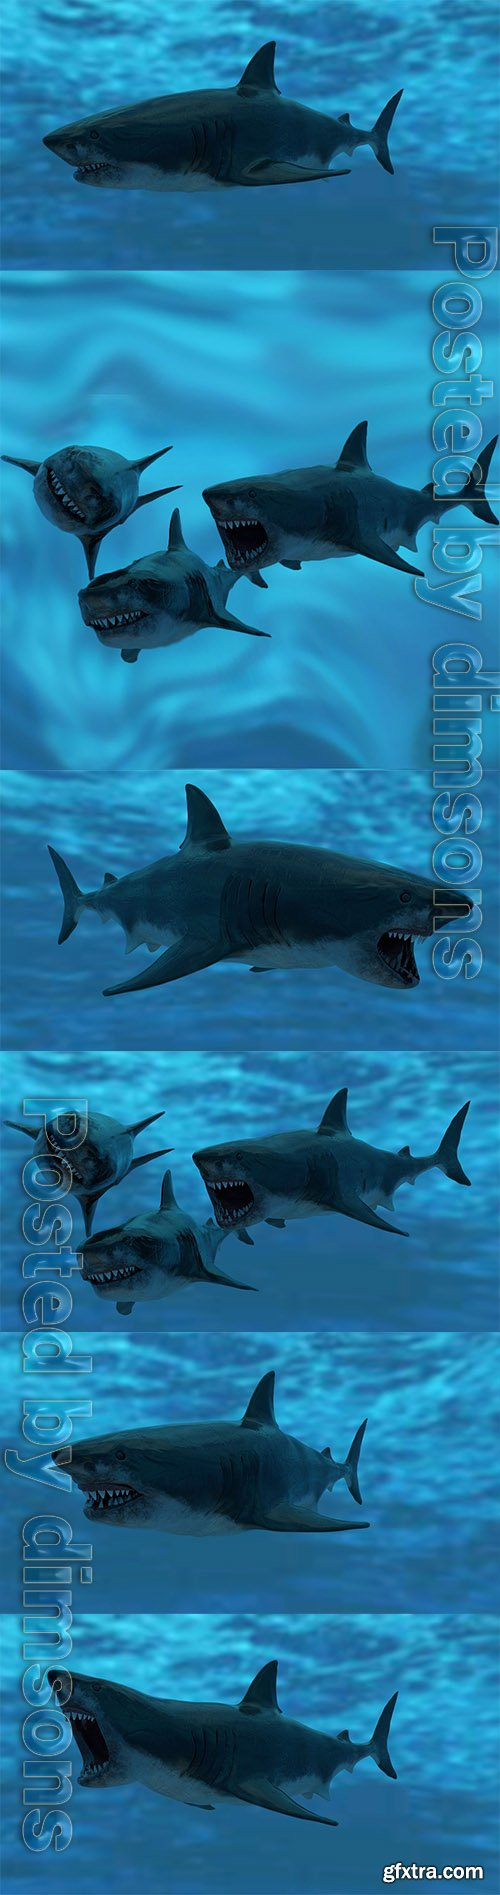 Cgtrader - Great White Shark Model Unreal Engine 4 7 animations Pack Low-poly 3D model